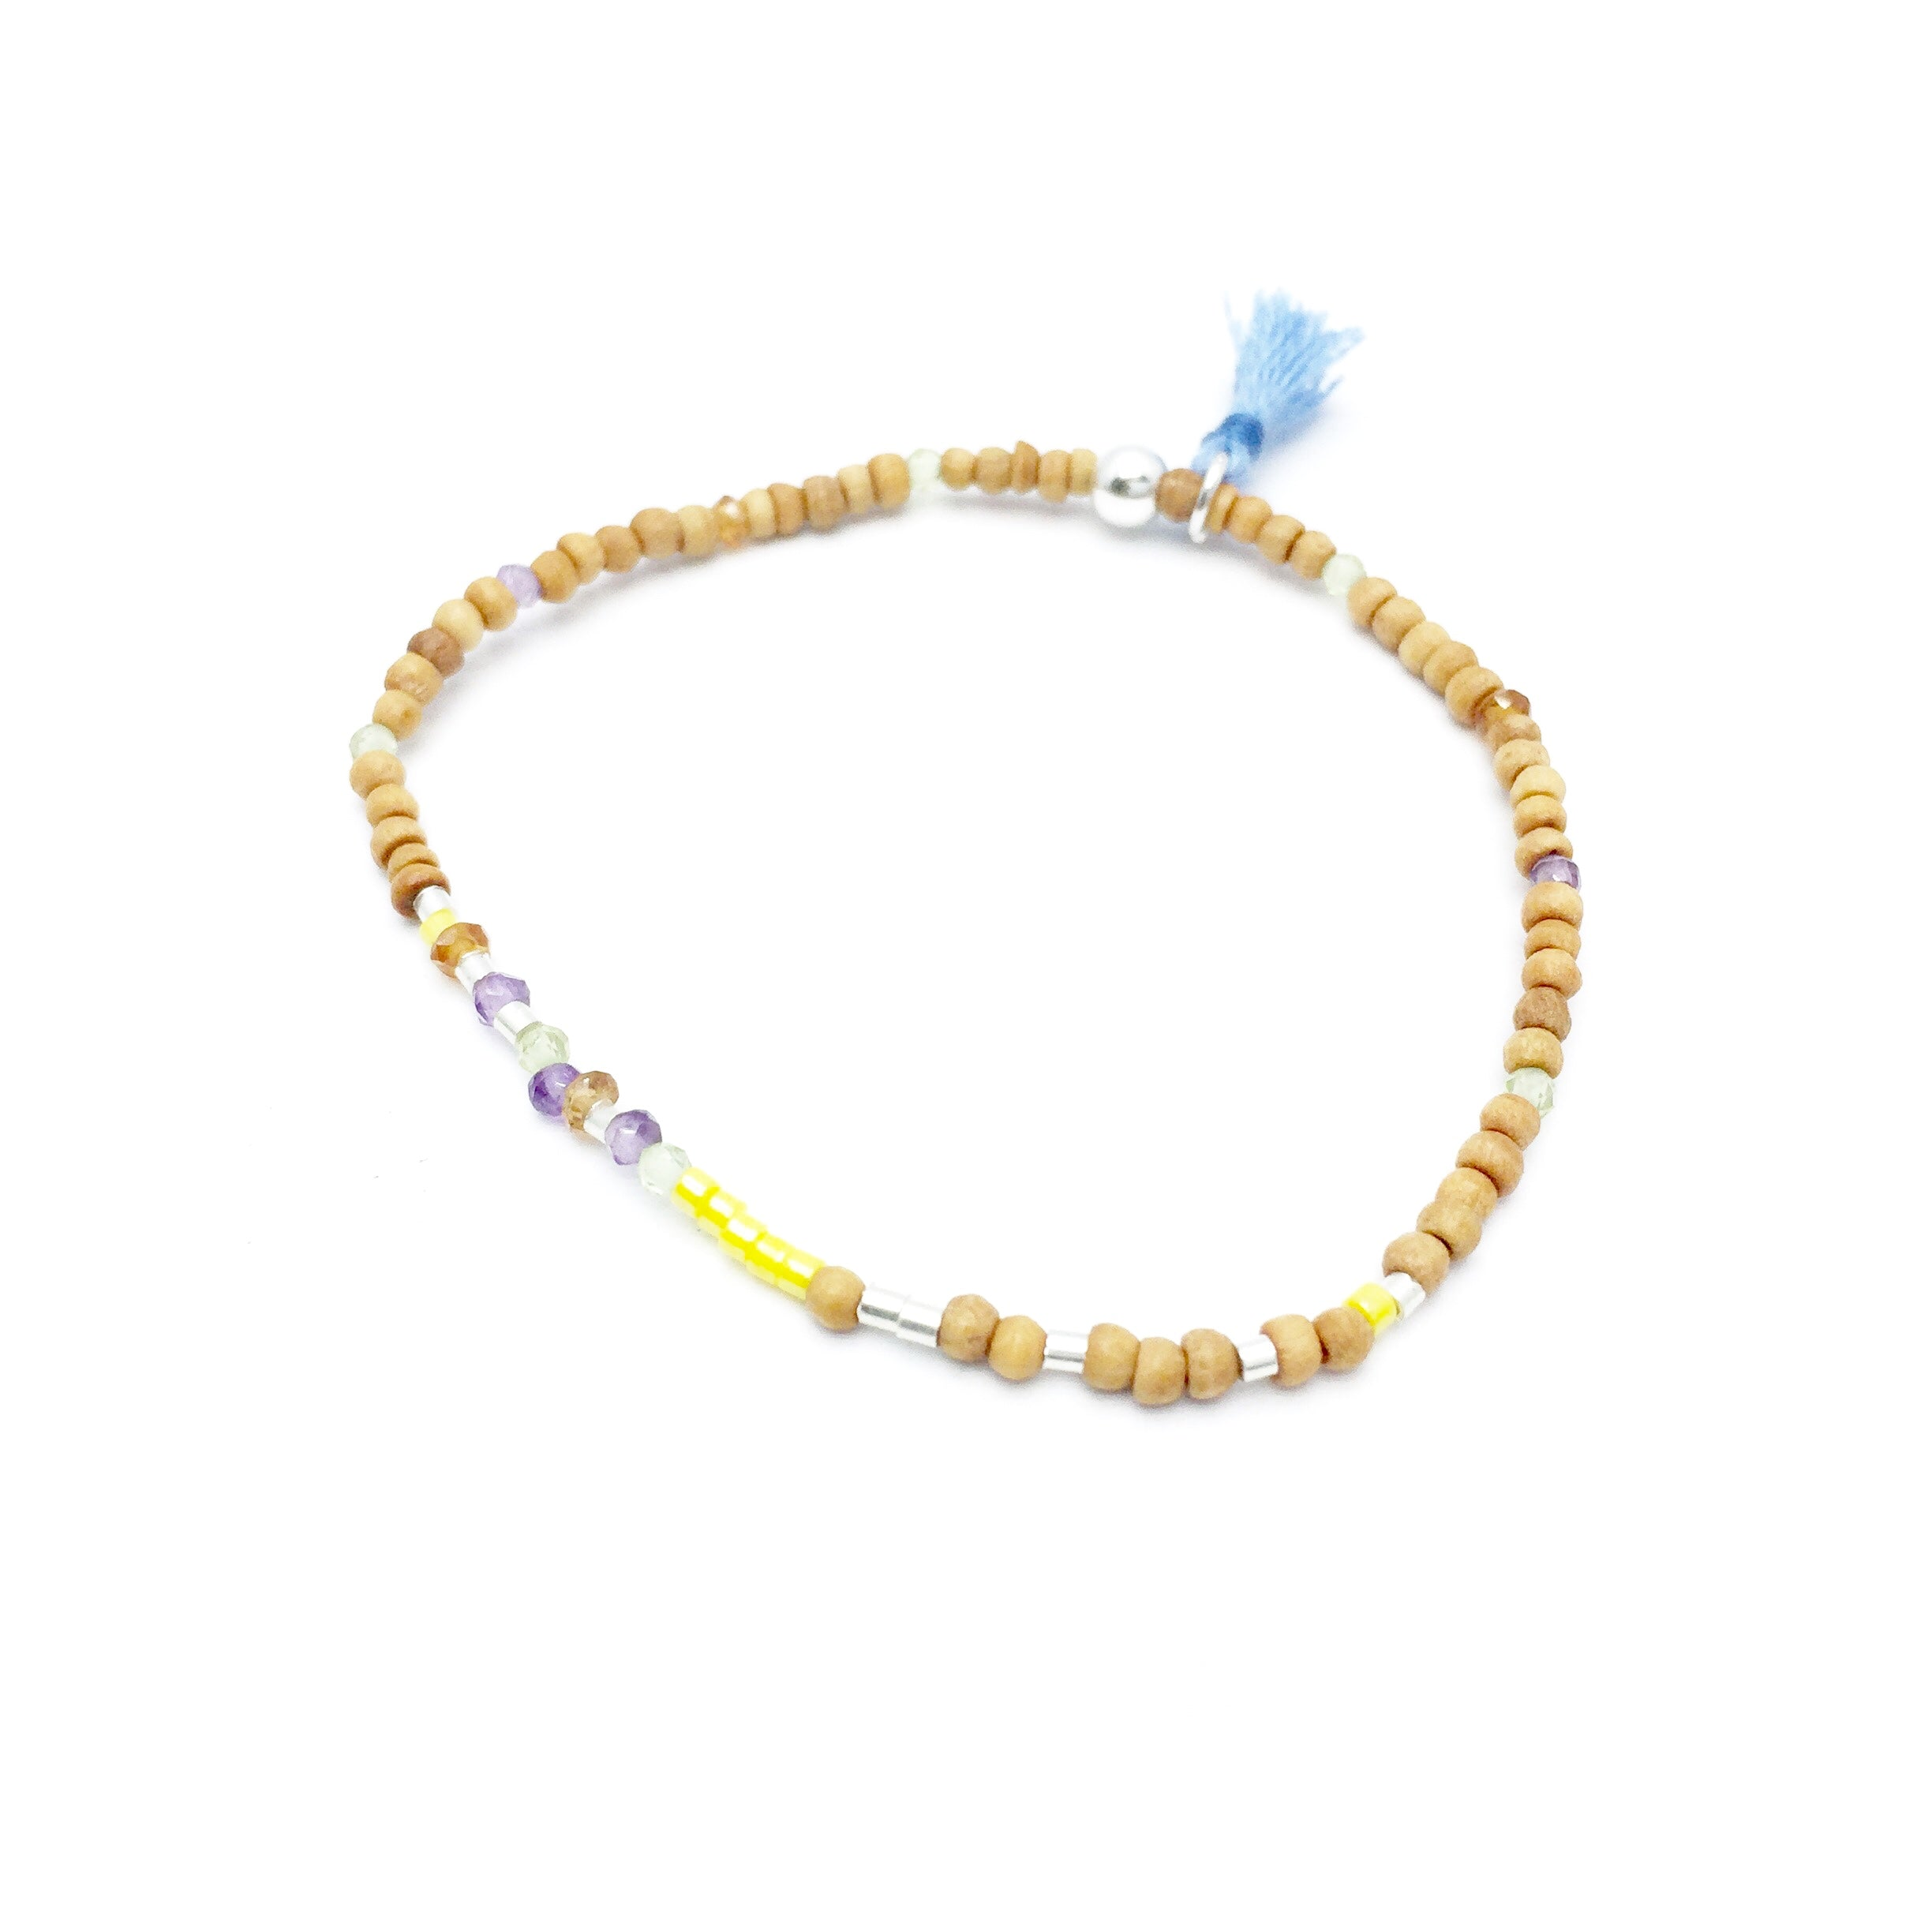 ALL IS WELL Sandalwood Morse Code Mantra® Bracelet